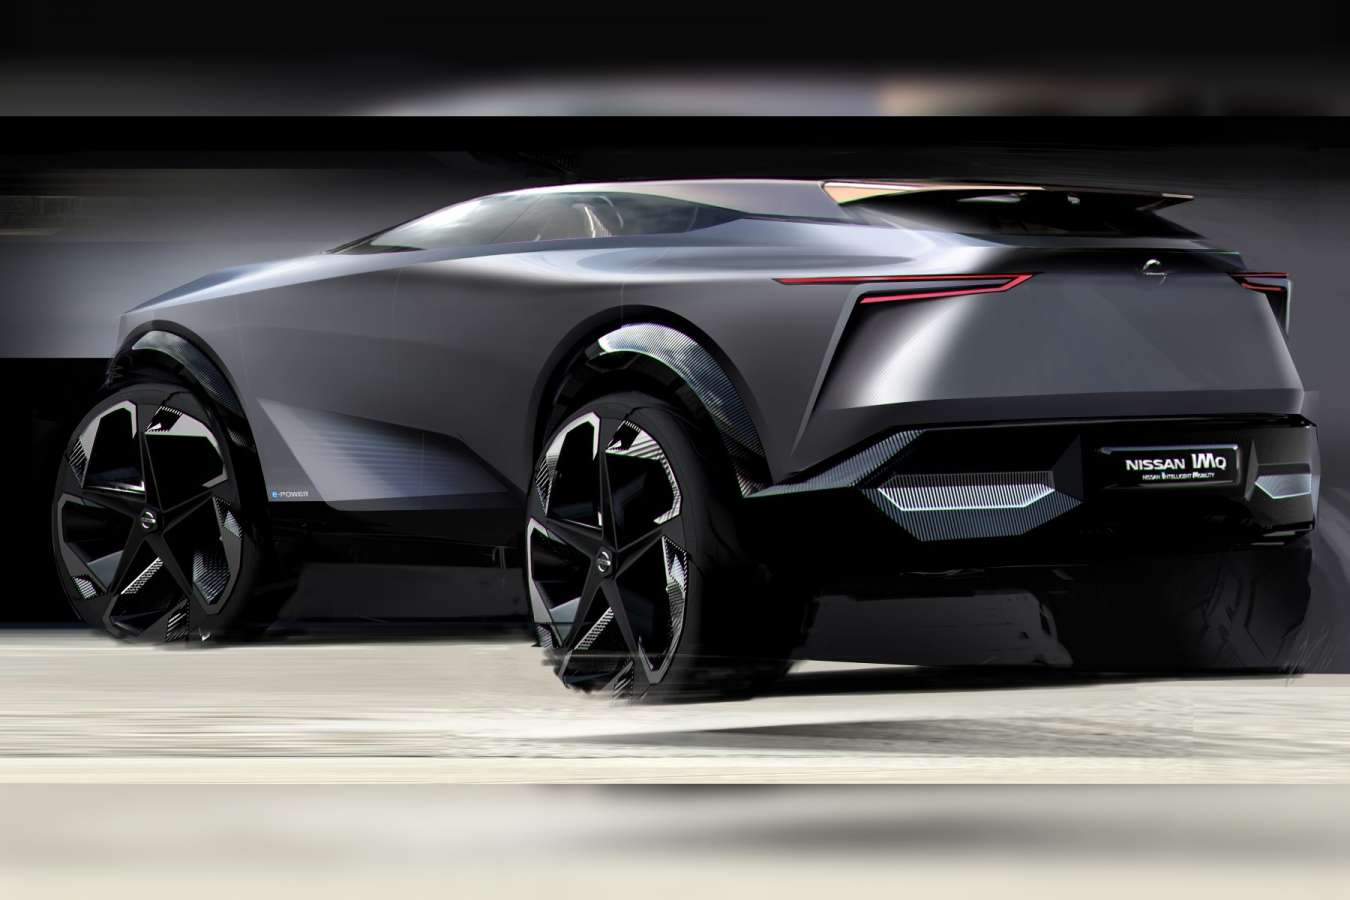 Nissan IMQ EV crossover concept set to debut next week in Geneva